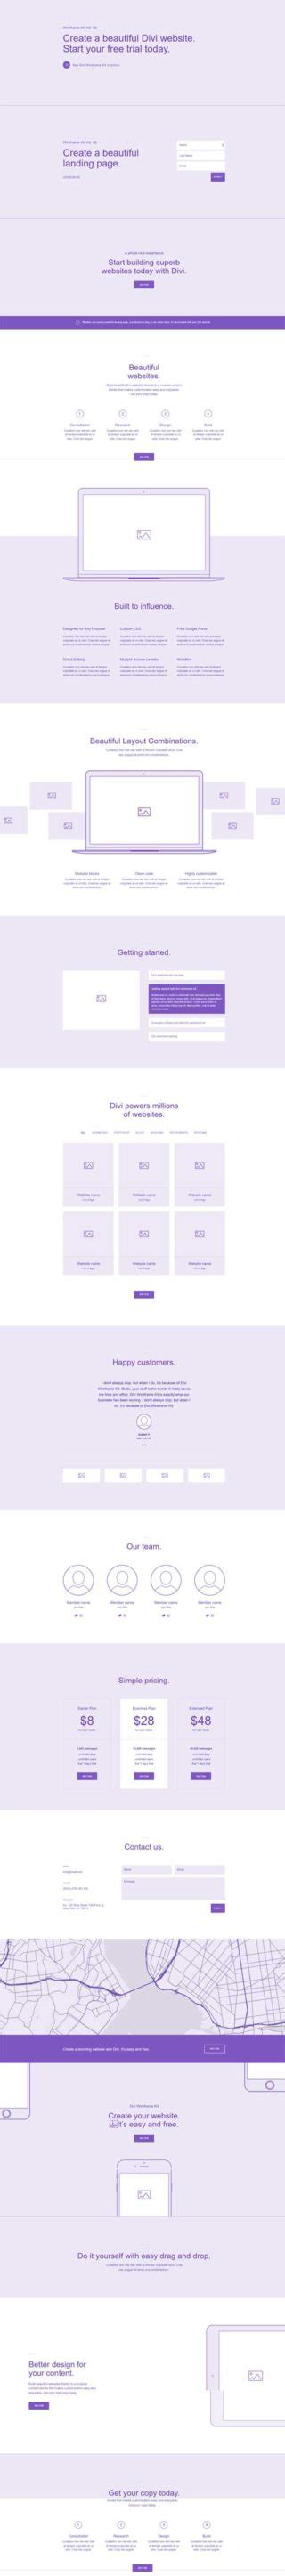 Real Estate Layouts For Divi On Divi Theme Layouts Divi Layout Templates